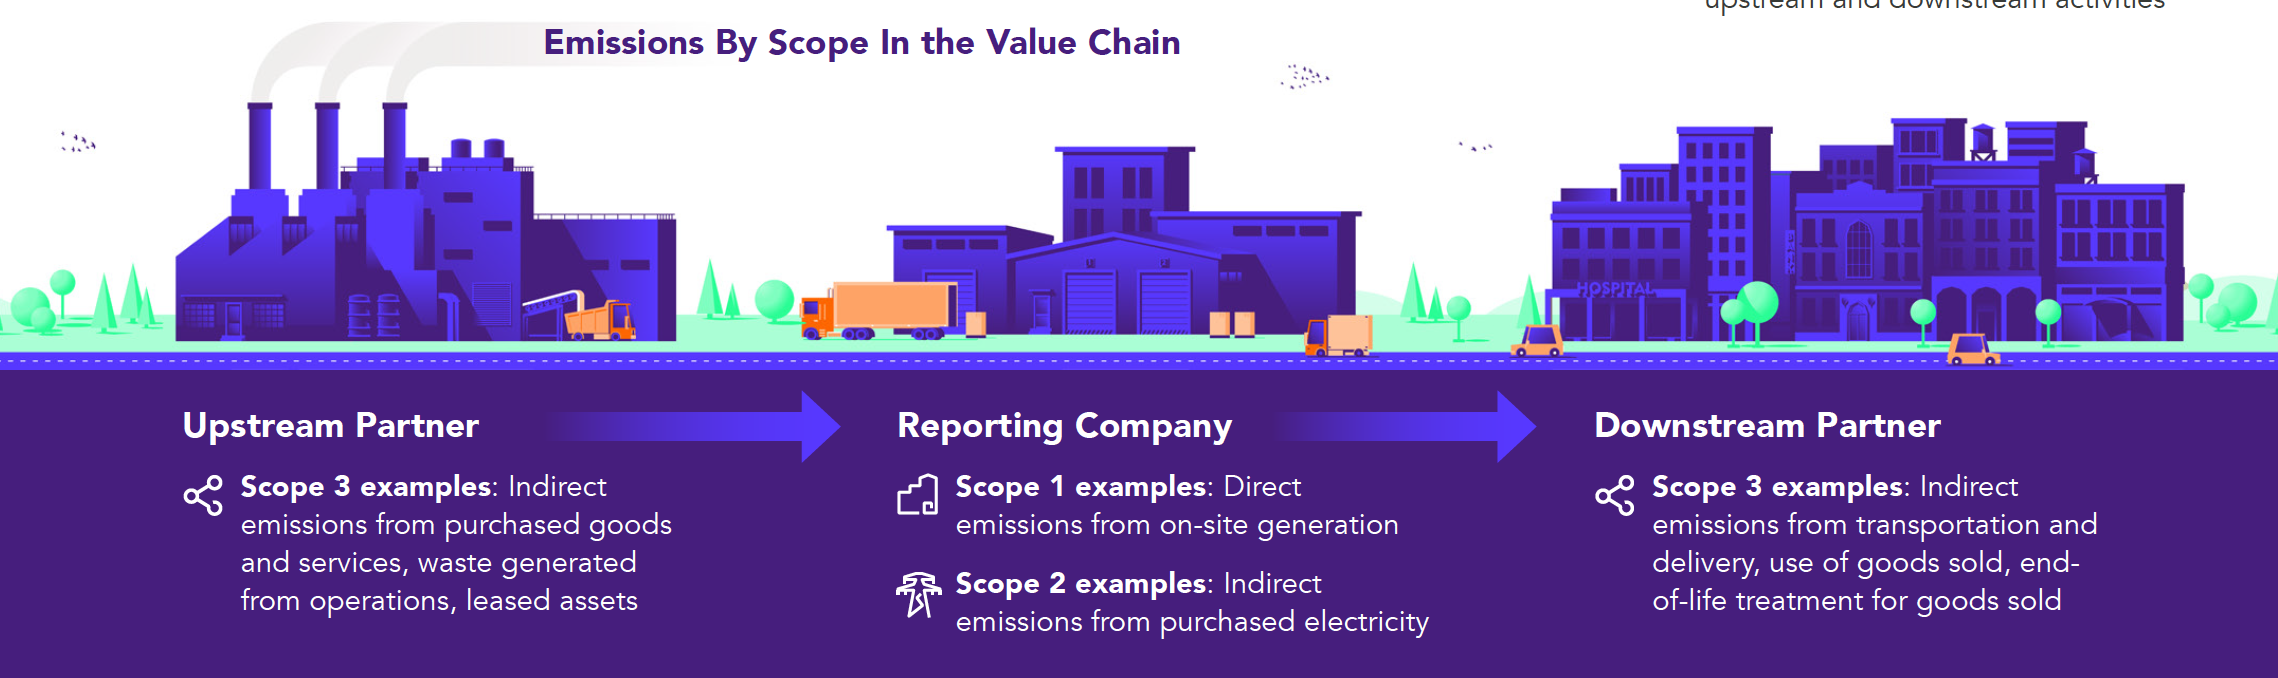 Emissions By Scope In the Value Chain